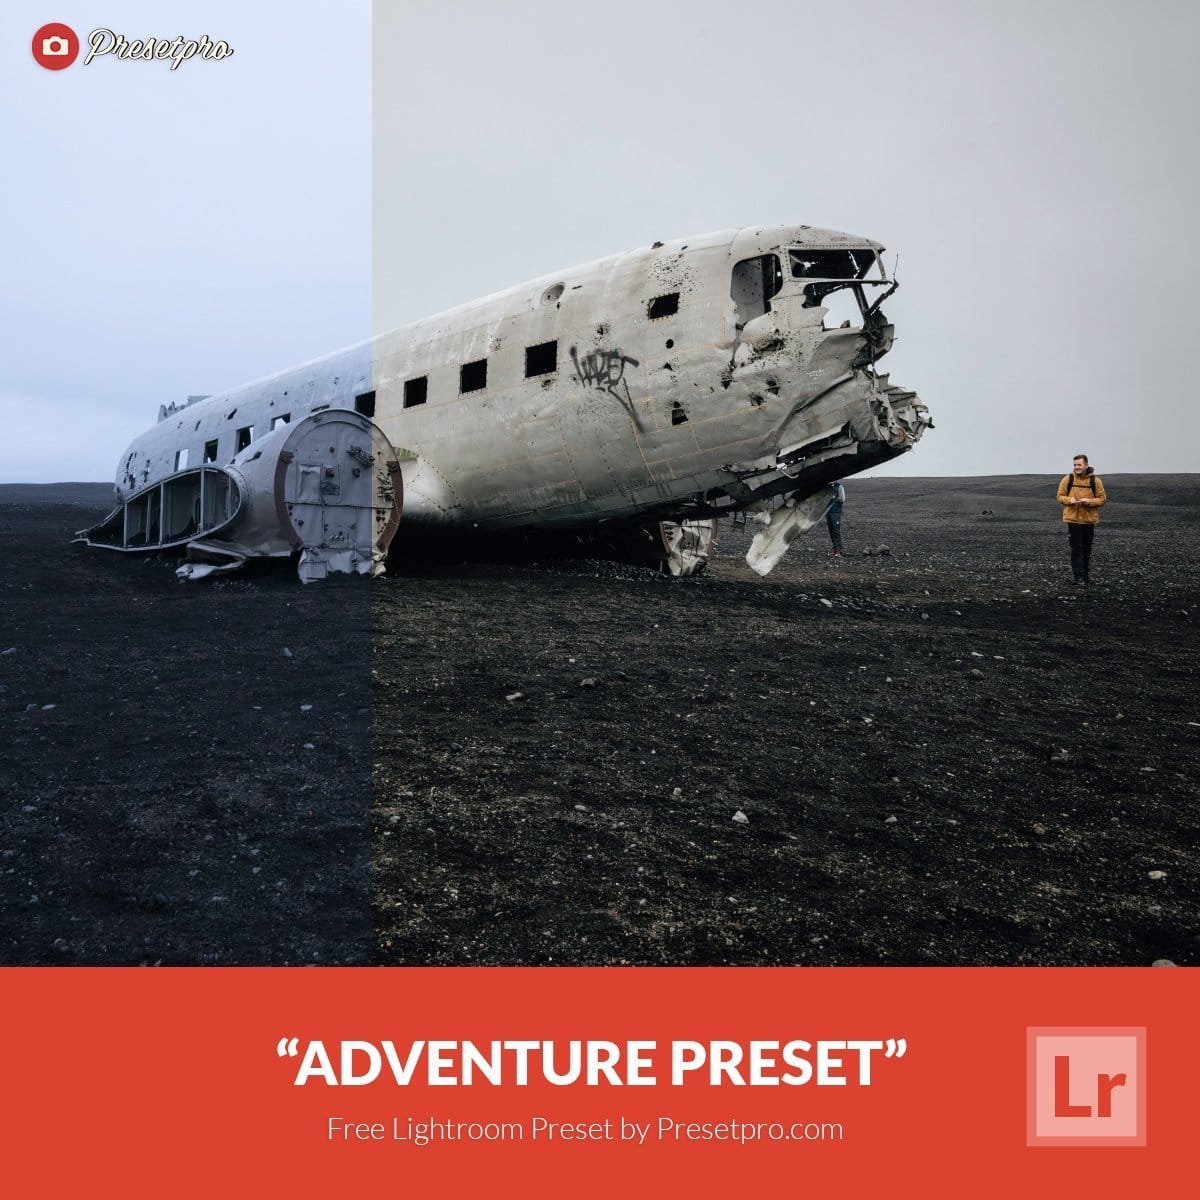 Free-Lightroom-Preset-Adventure-Presetpro.com